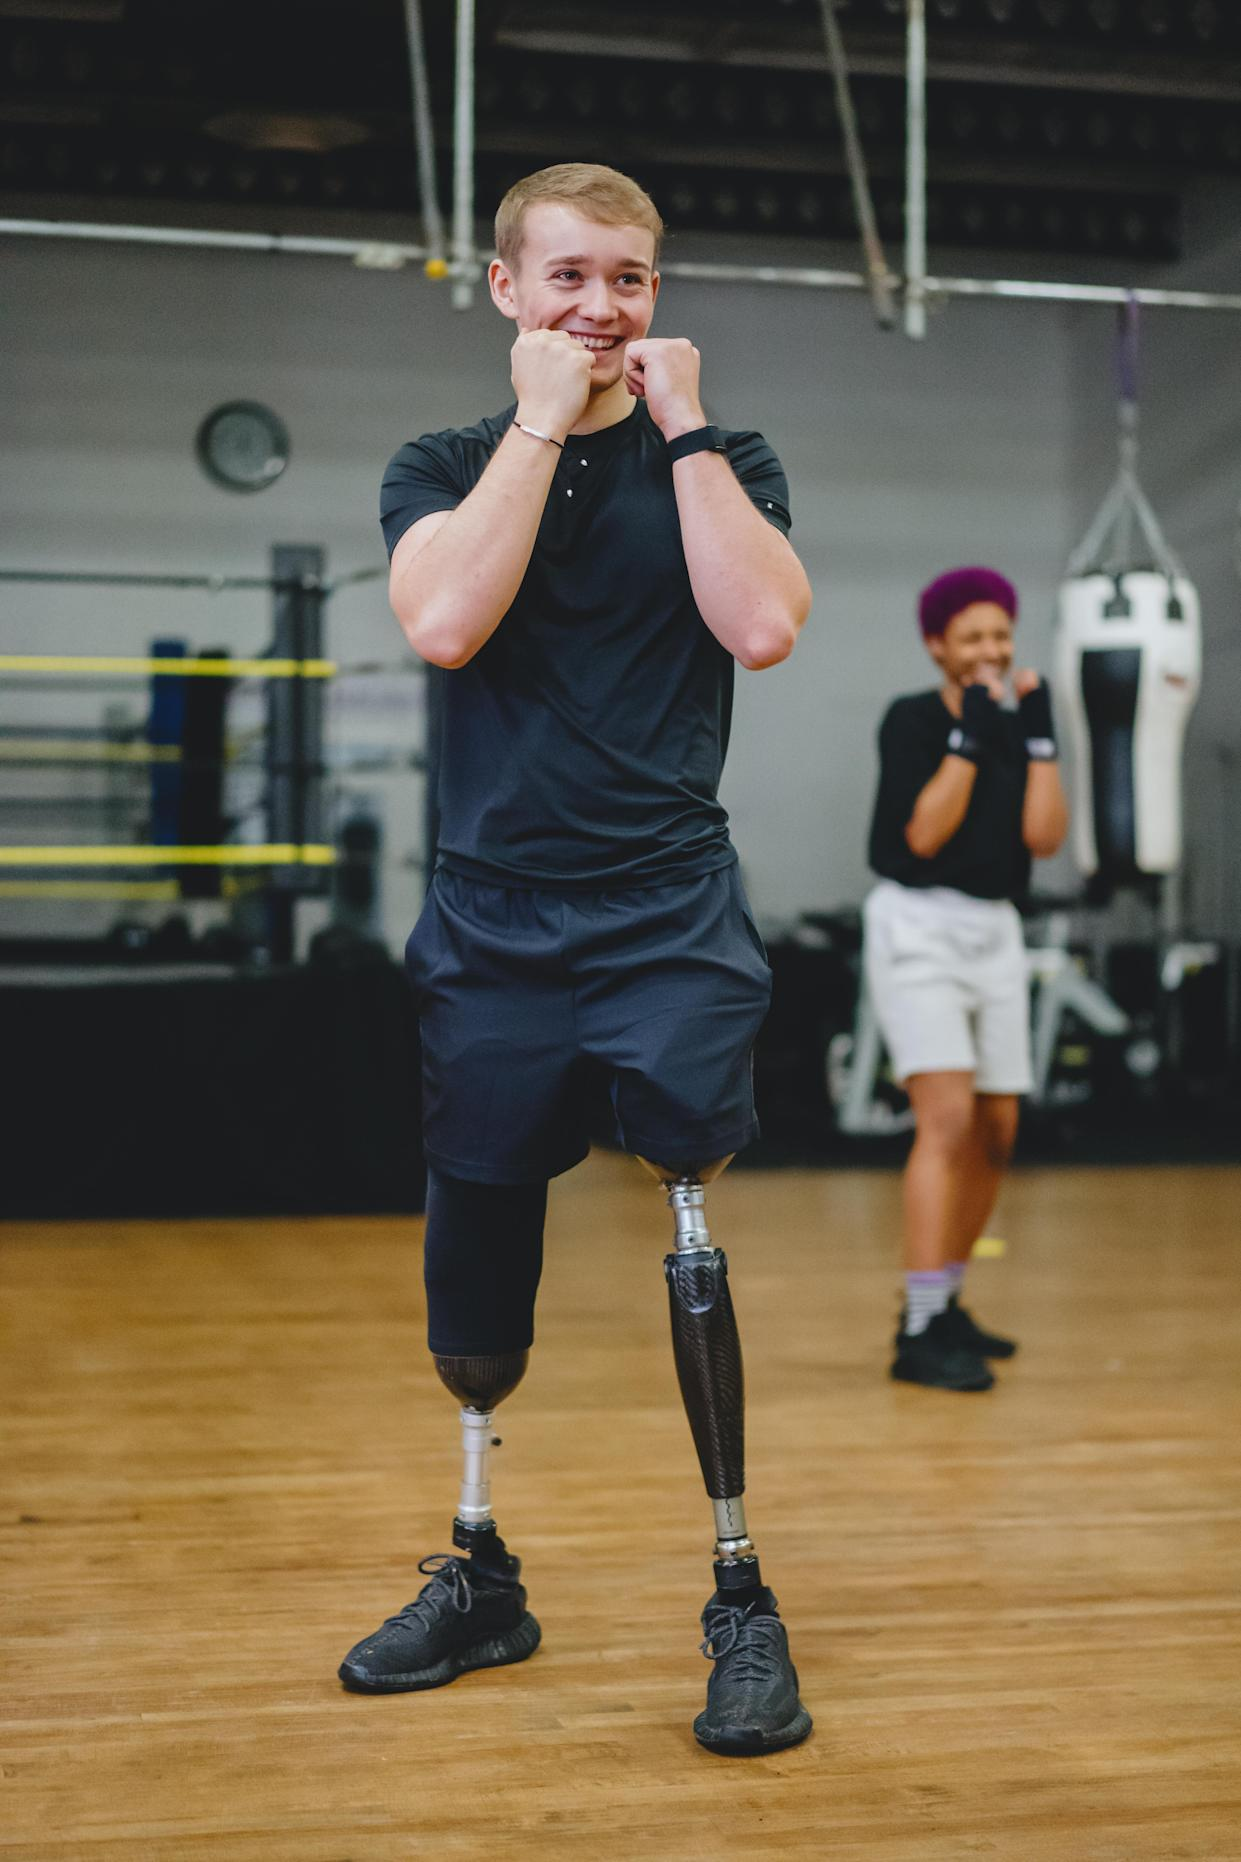 Billy Monger trains at Fight 4 Change in London (Jordan Mansfield/Comic Relief/PA)